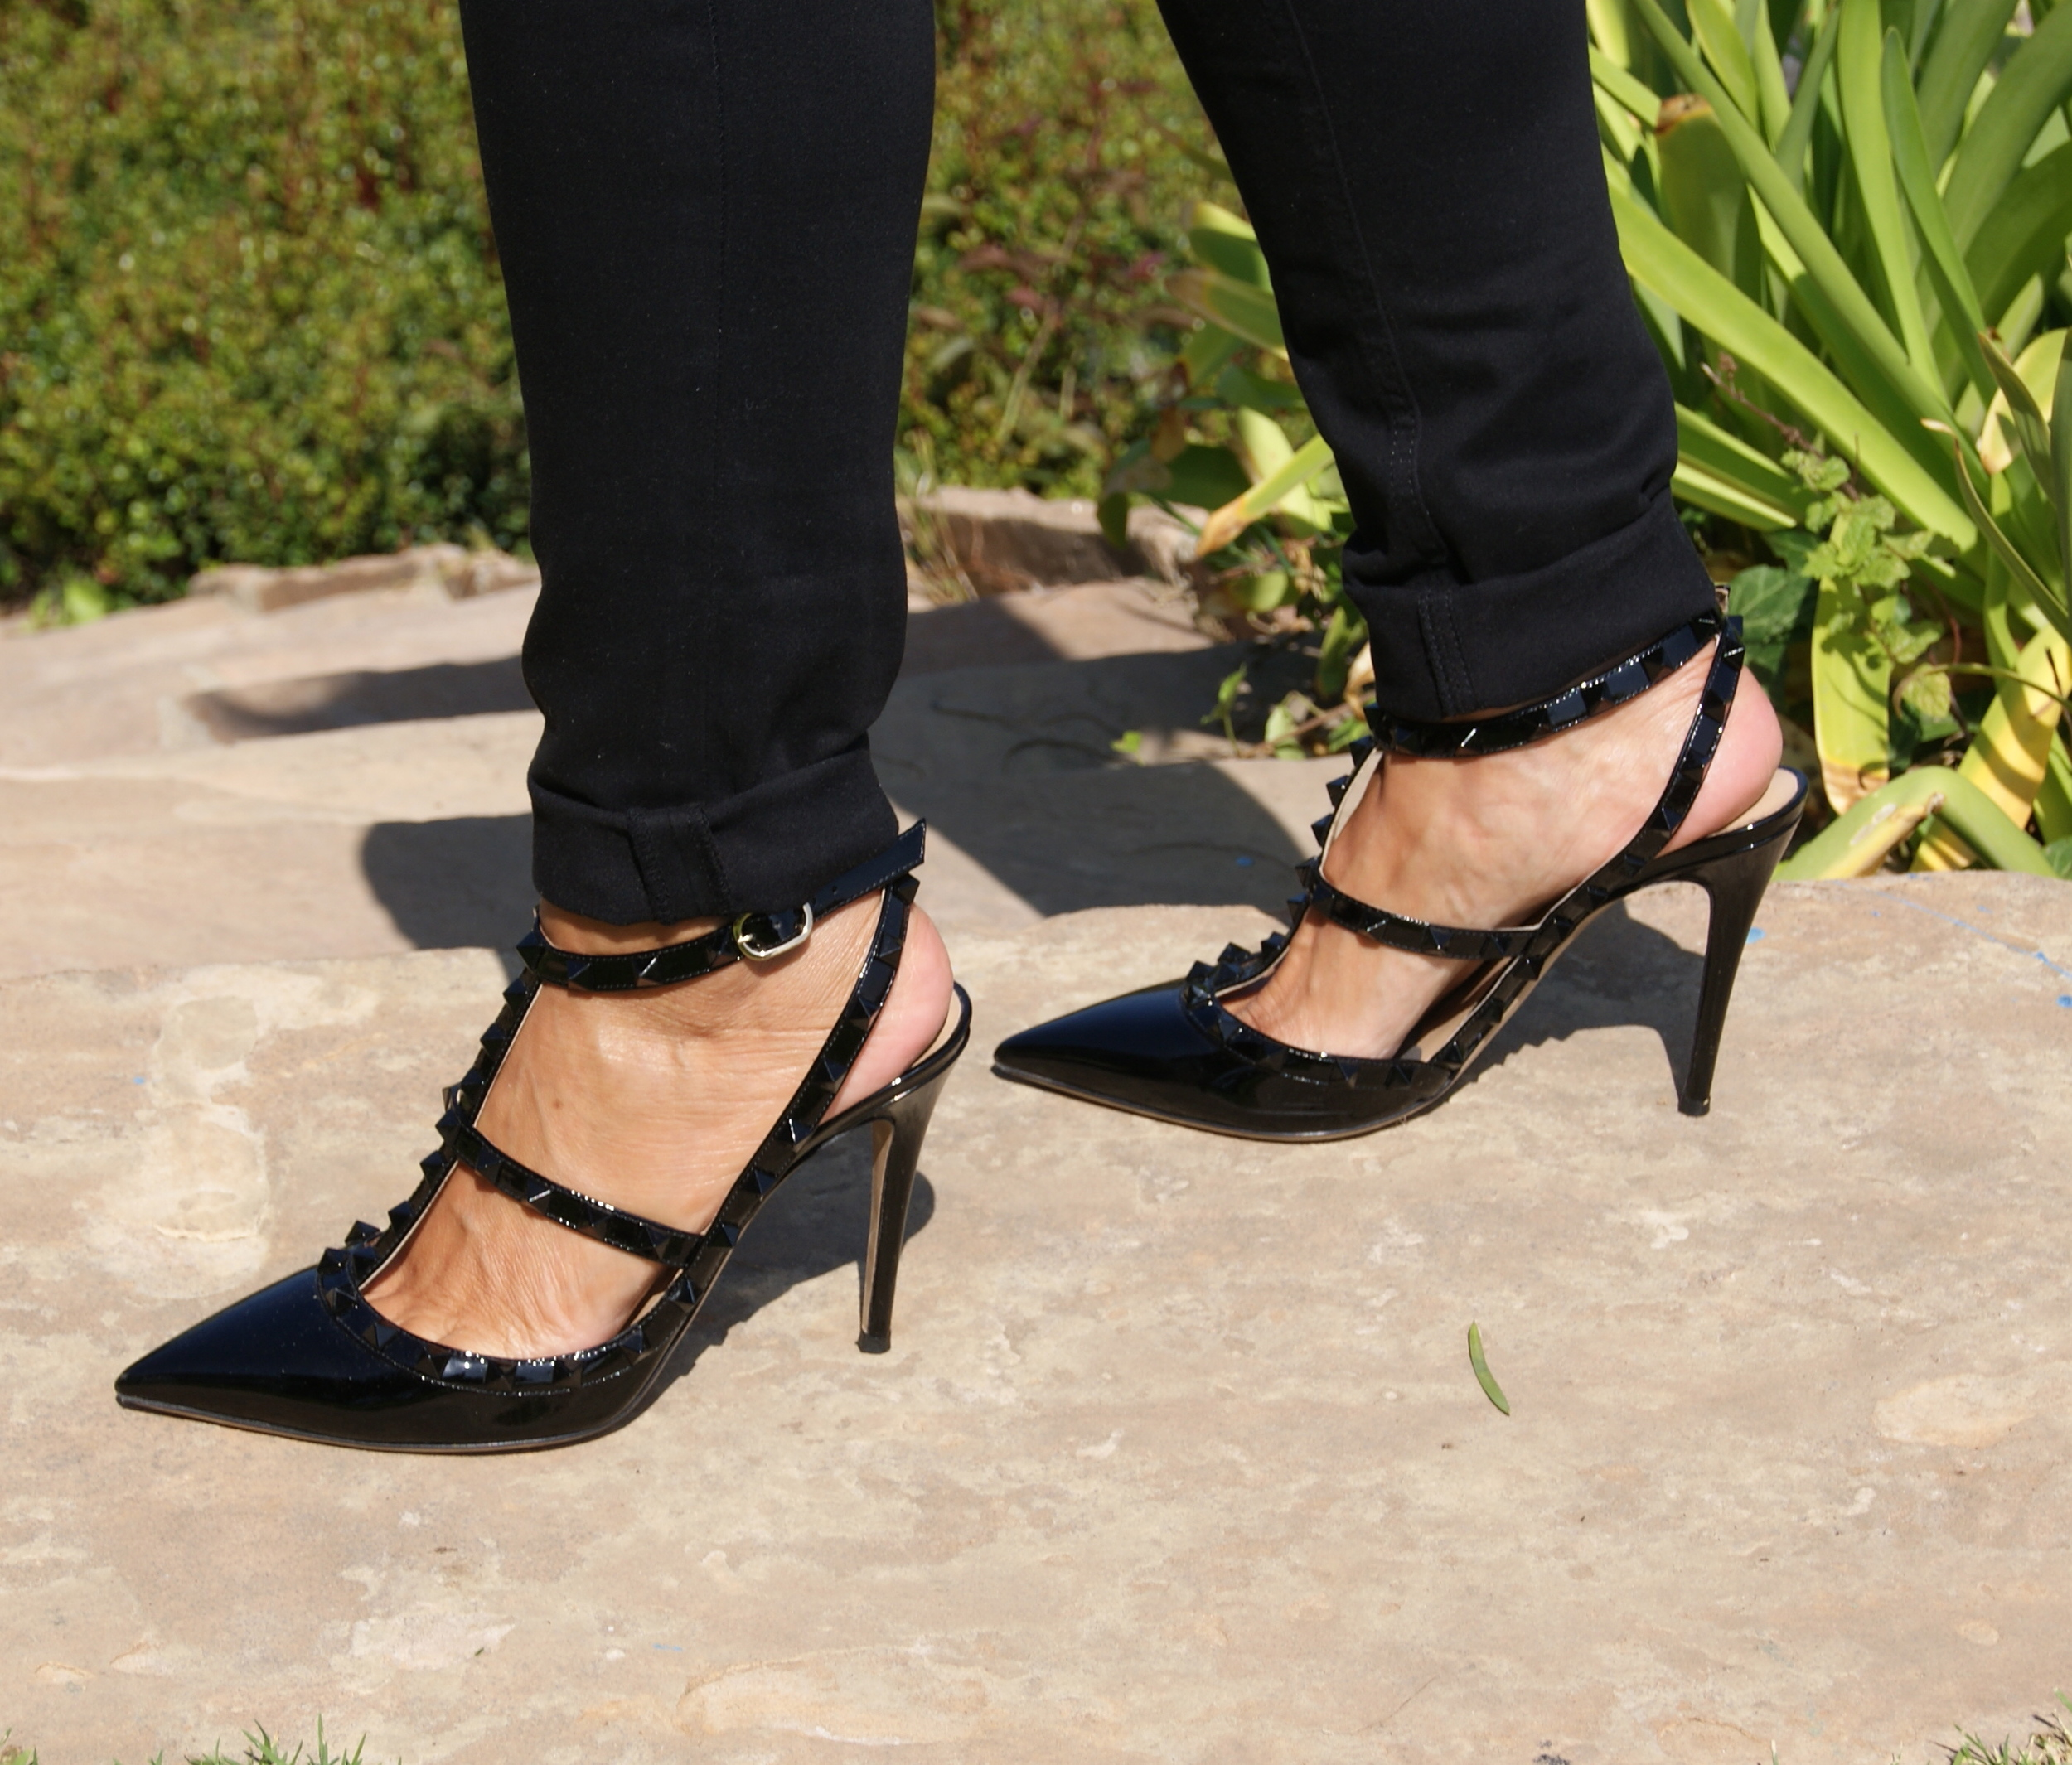 Valentino Rock Stud pump : Side view. Worn with black jeans (cuffed to show the stud details).